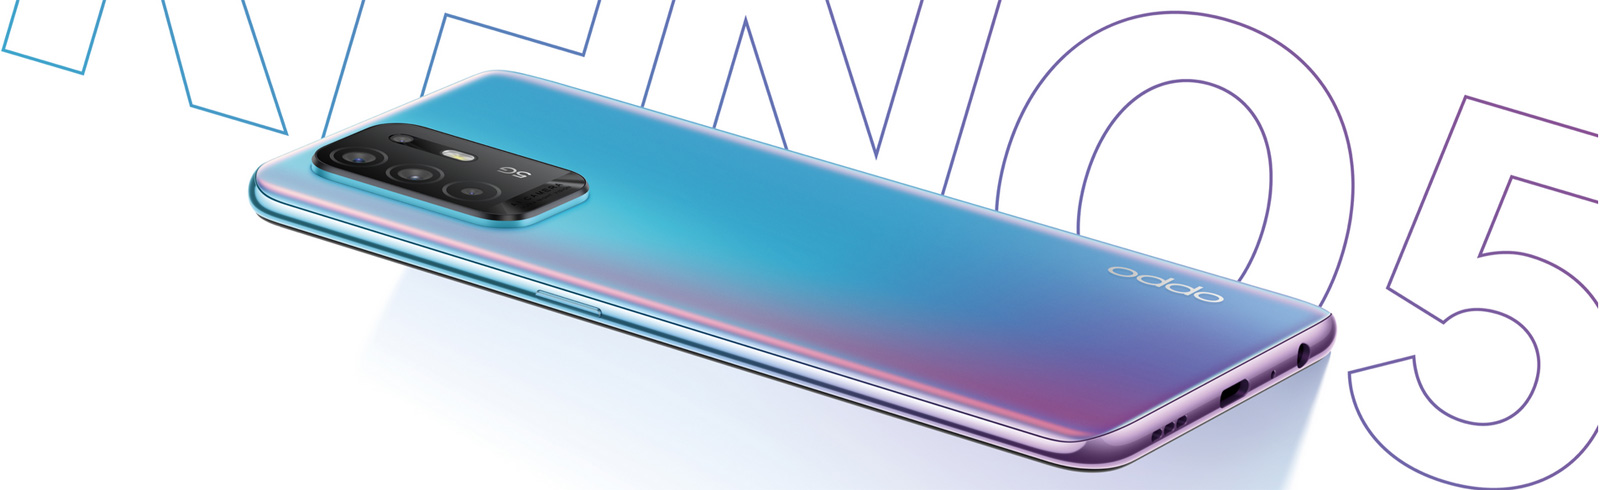 Oppo Reno5 Z 5G is launched in the Middle East and South-East Asia